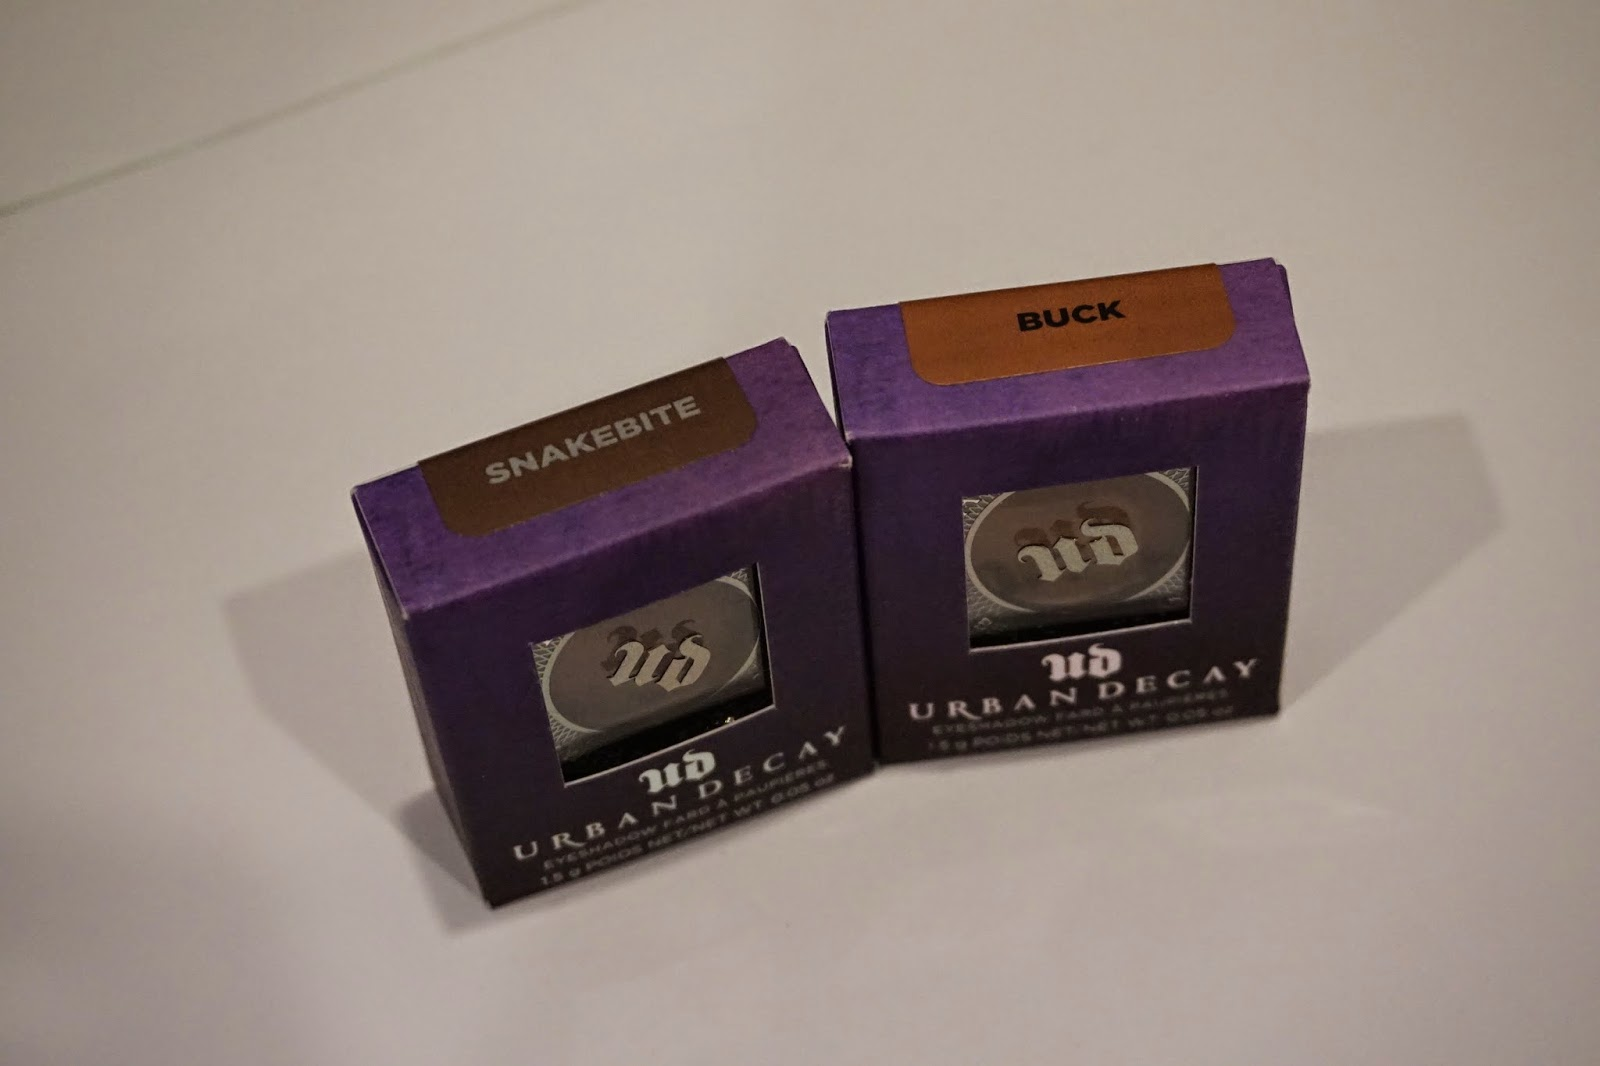 Sephora Haul and mini reviews - Urban Decay Snakebite and Buck - Dusty Foxes Beauty Blog